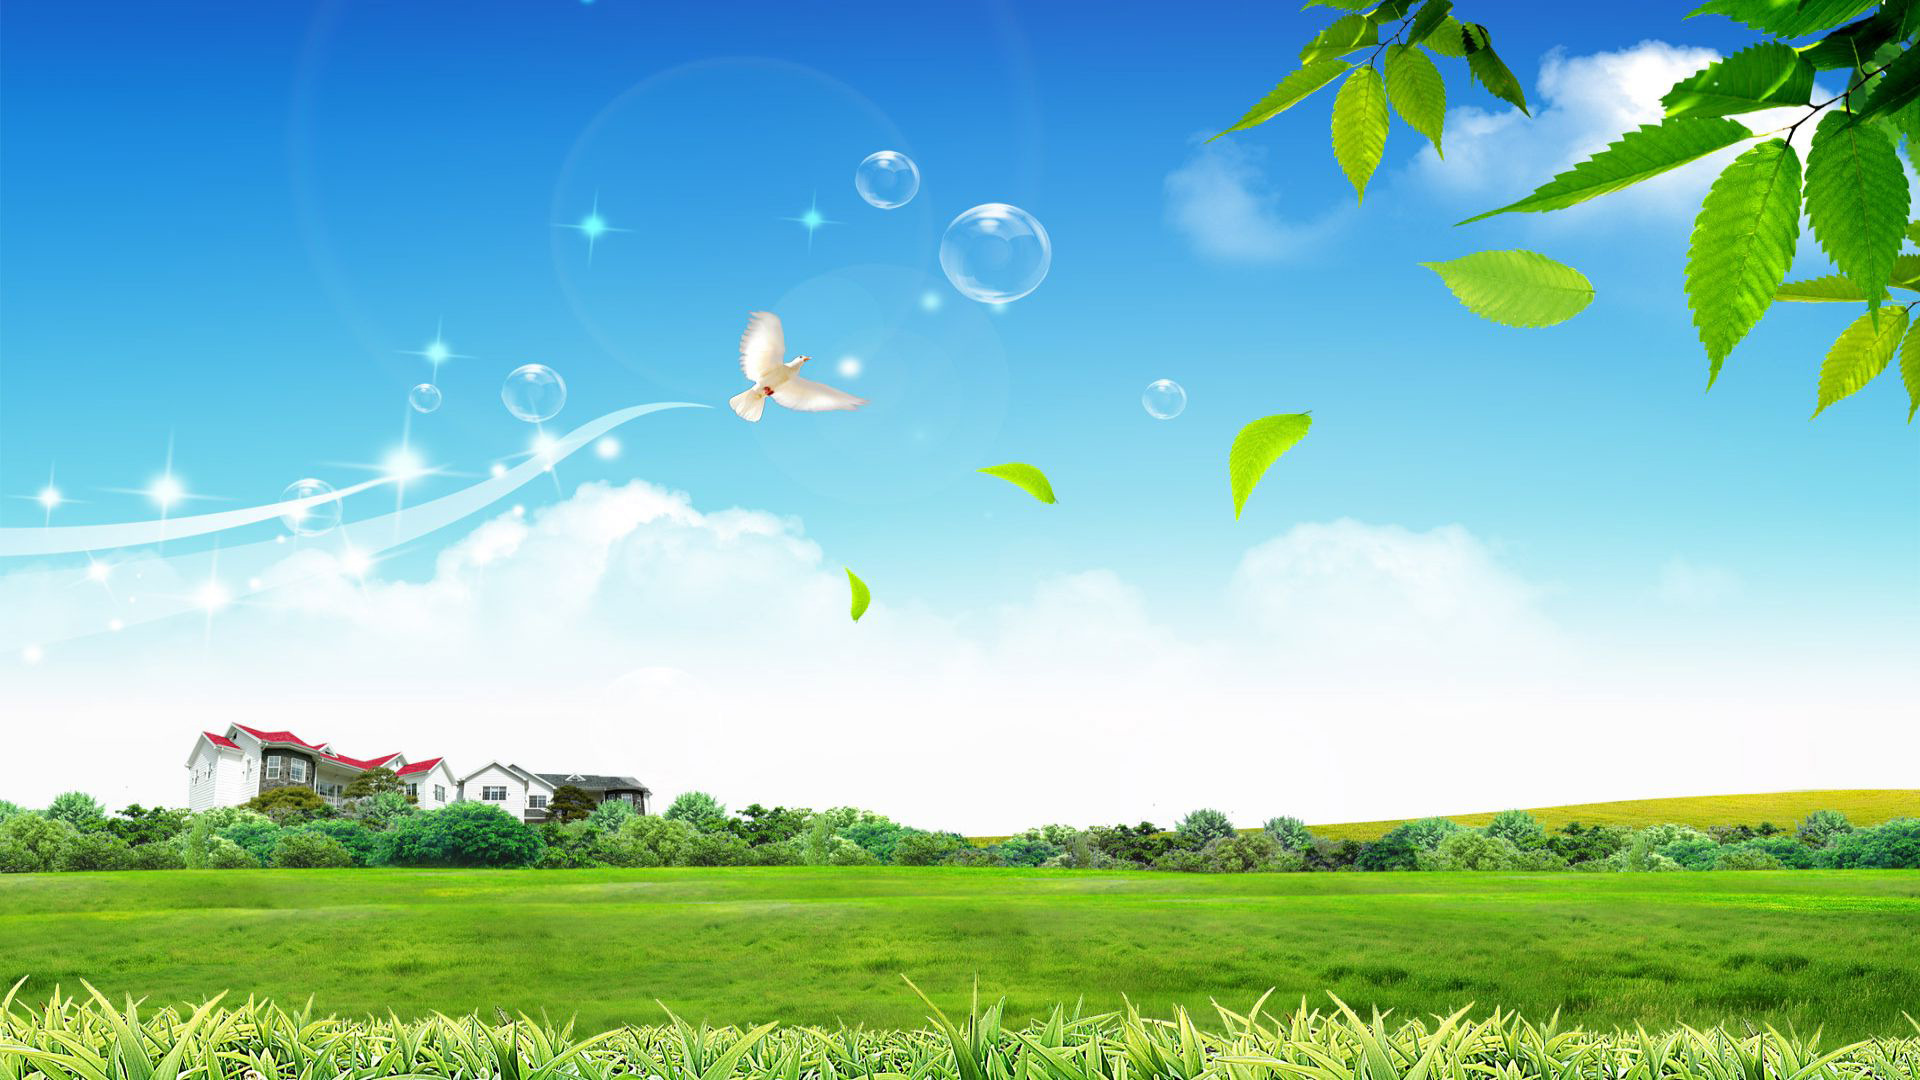 Bubbles and dove over the field